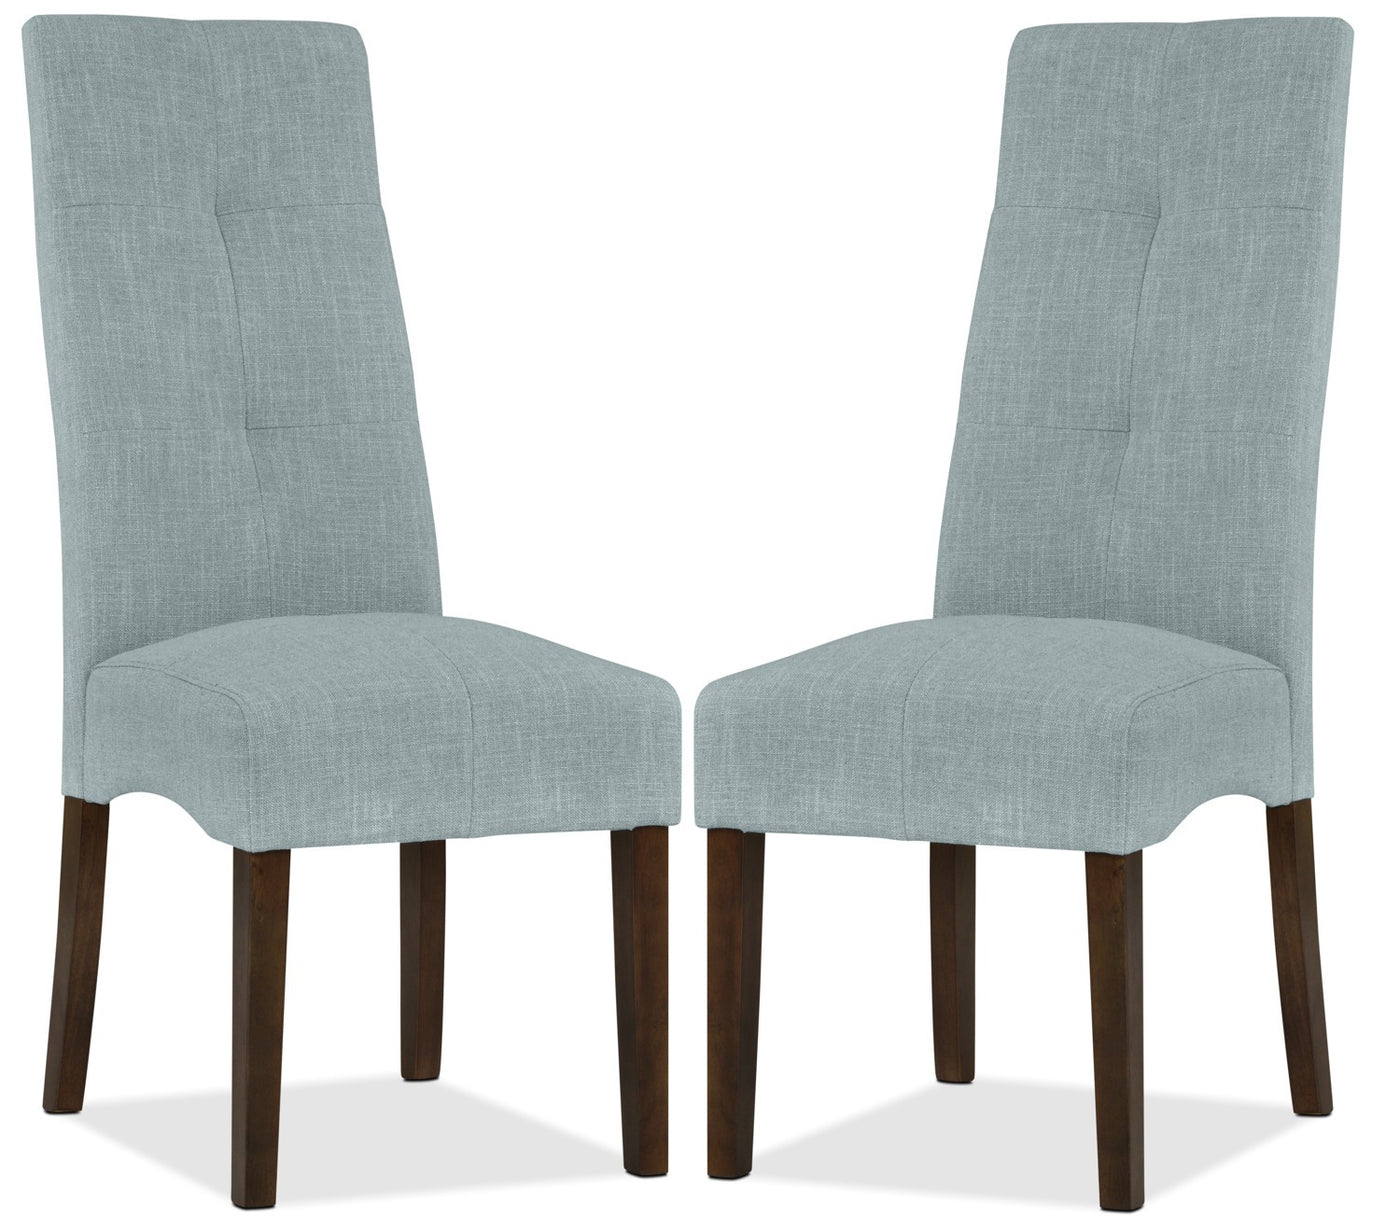 brand new fa434 a96f3 Sadie Dining Chair, Set of 2 - Light Blue